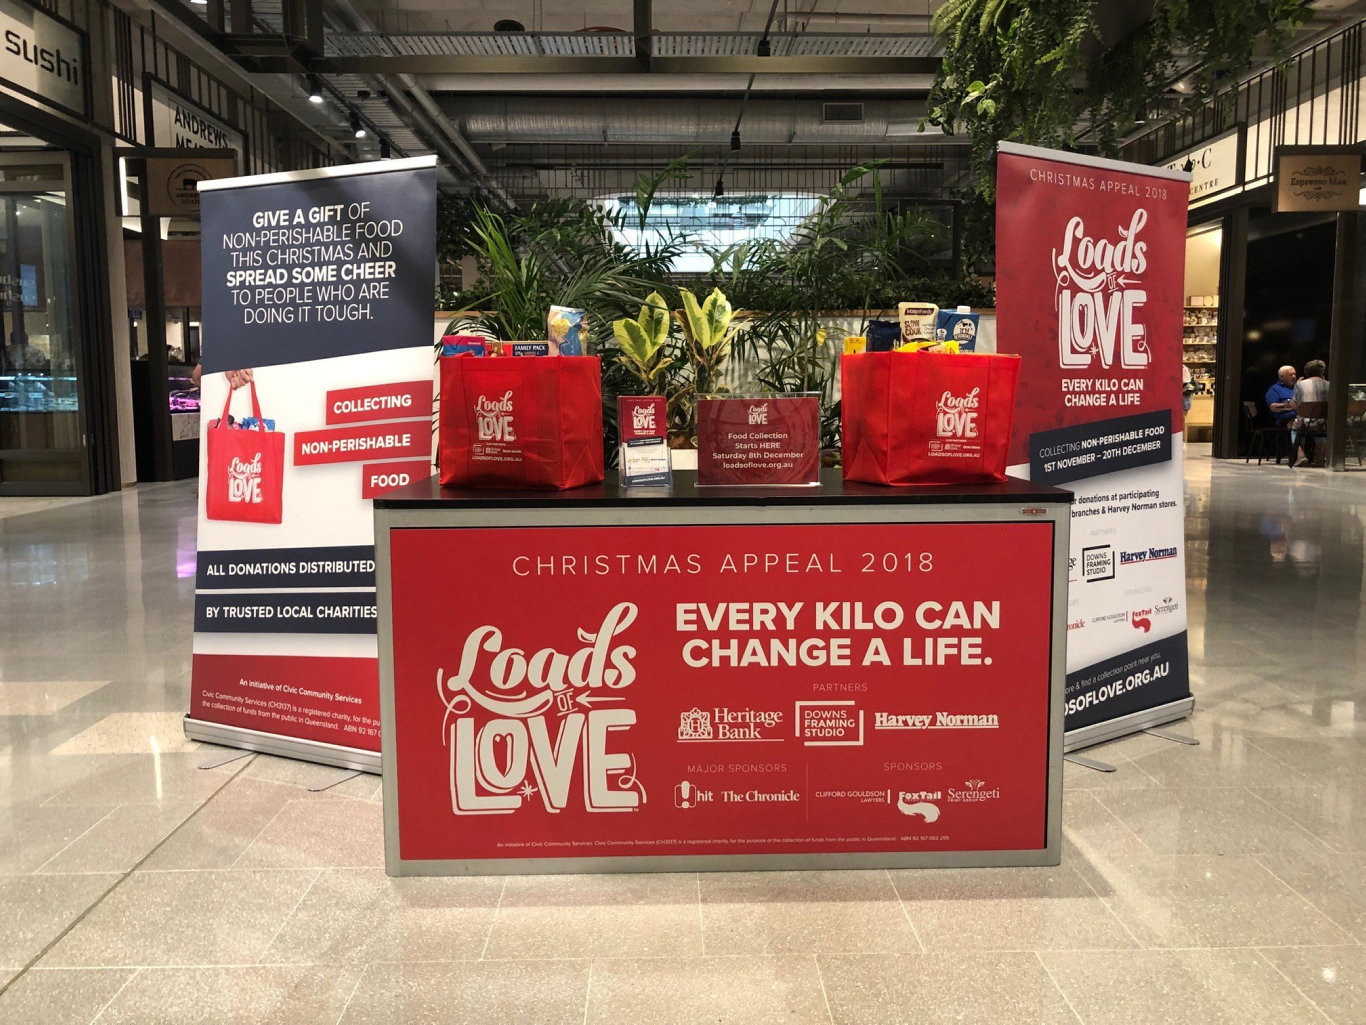 From Saturday, volunteers will be ready to take your donations of non-perishable food for the Loads of Love Appeal.